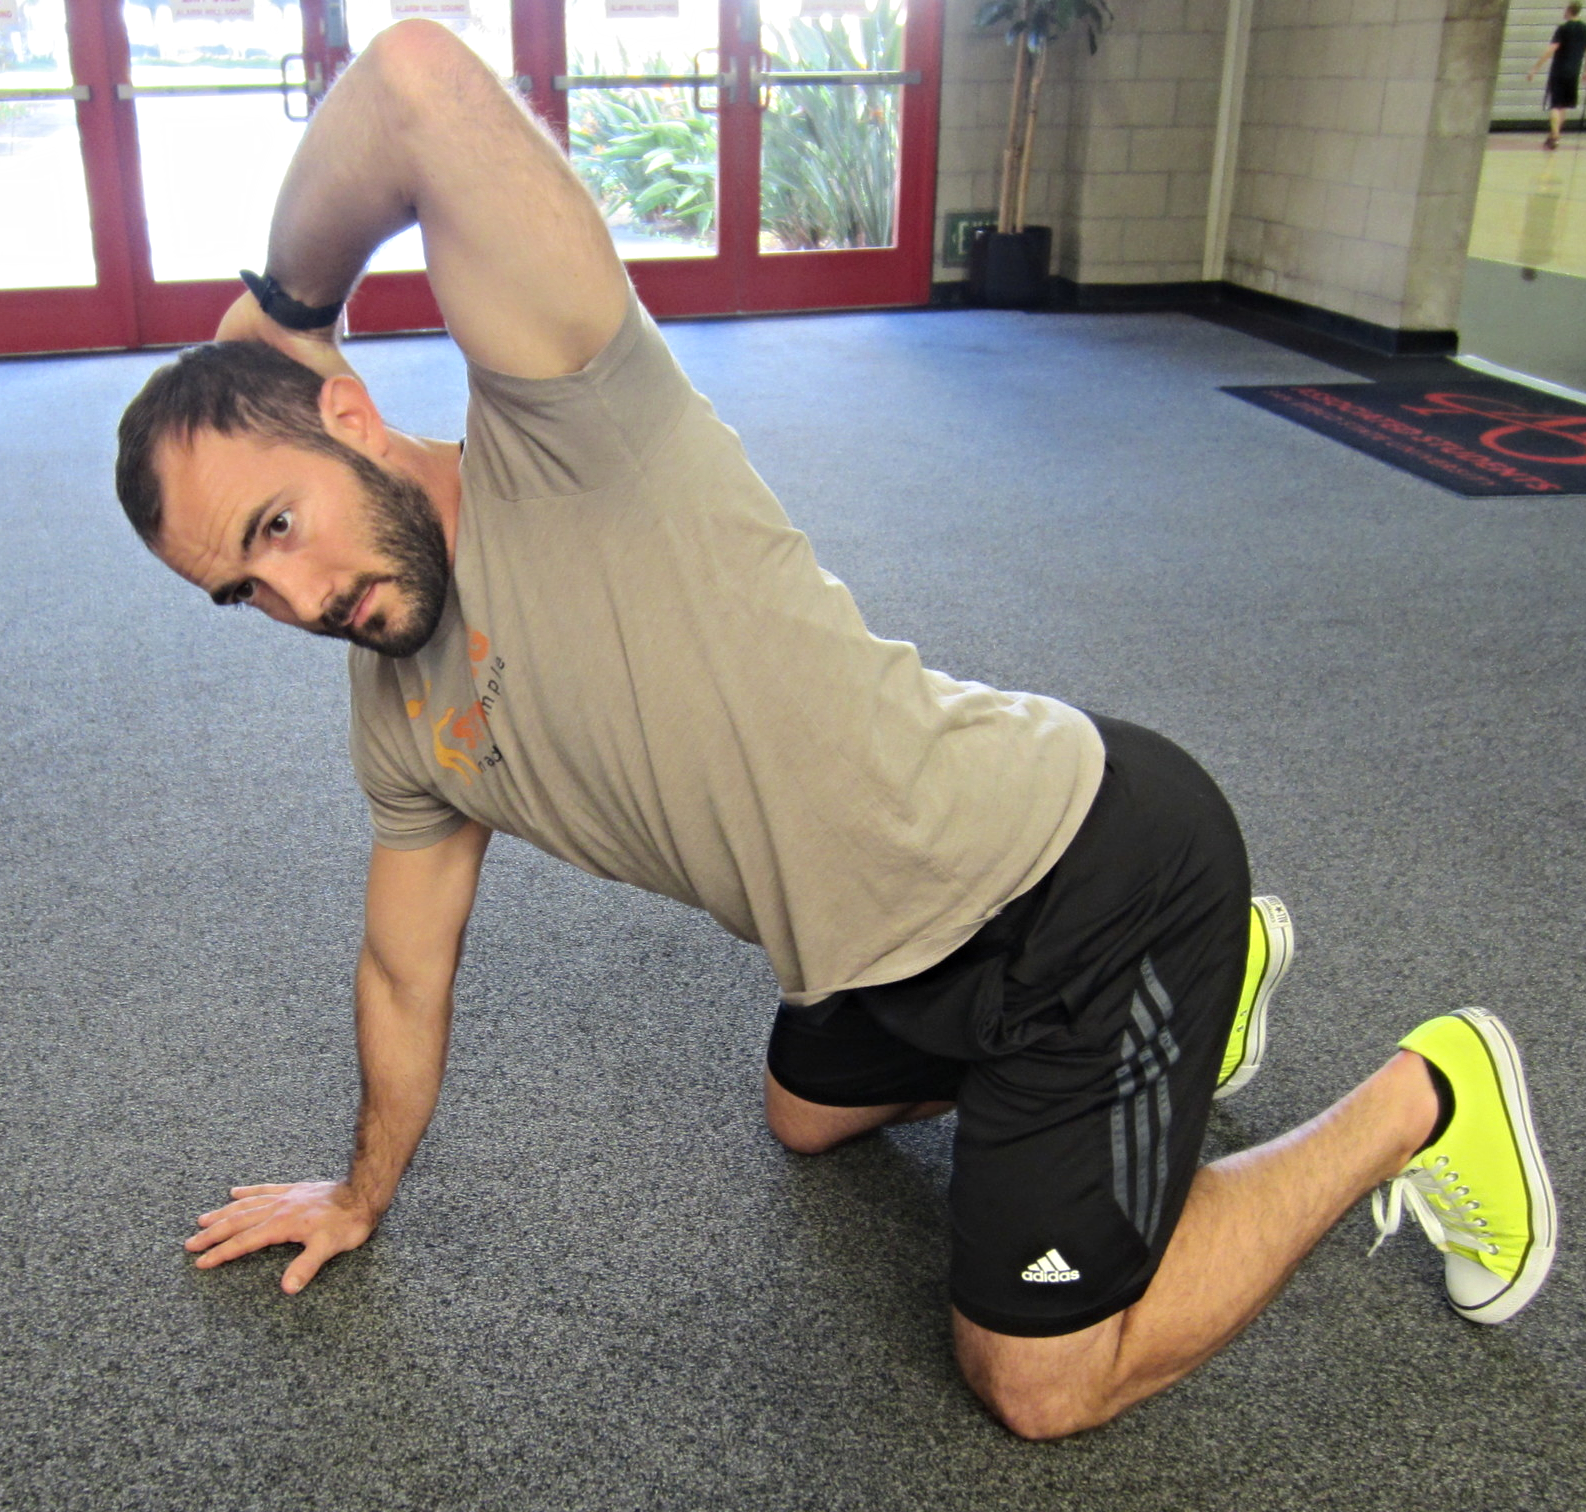 Personal Trainer Thoracic Mobility Exercise